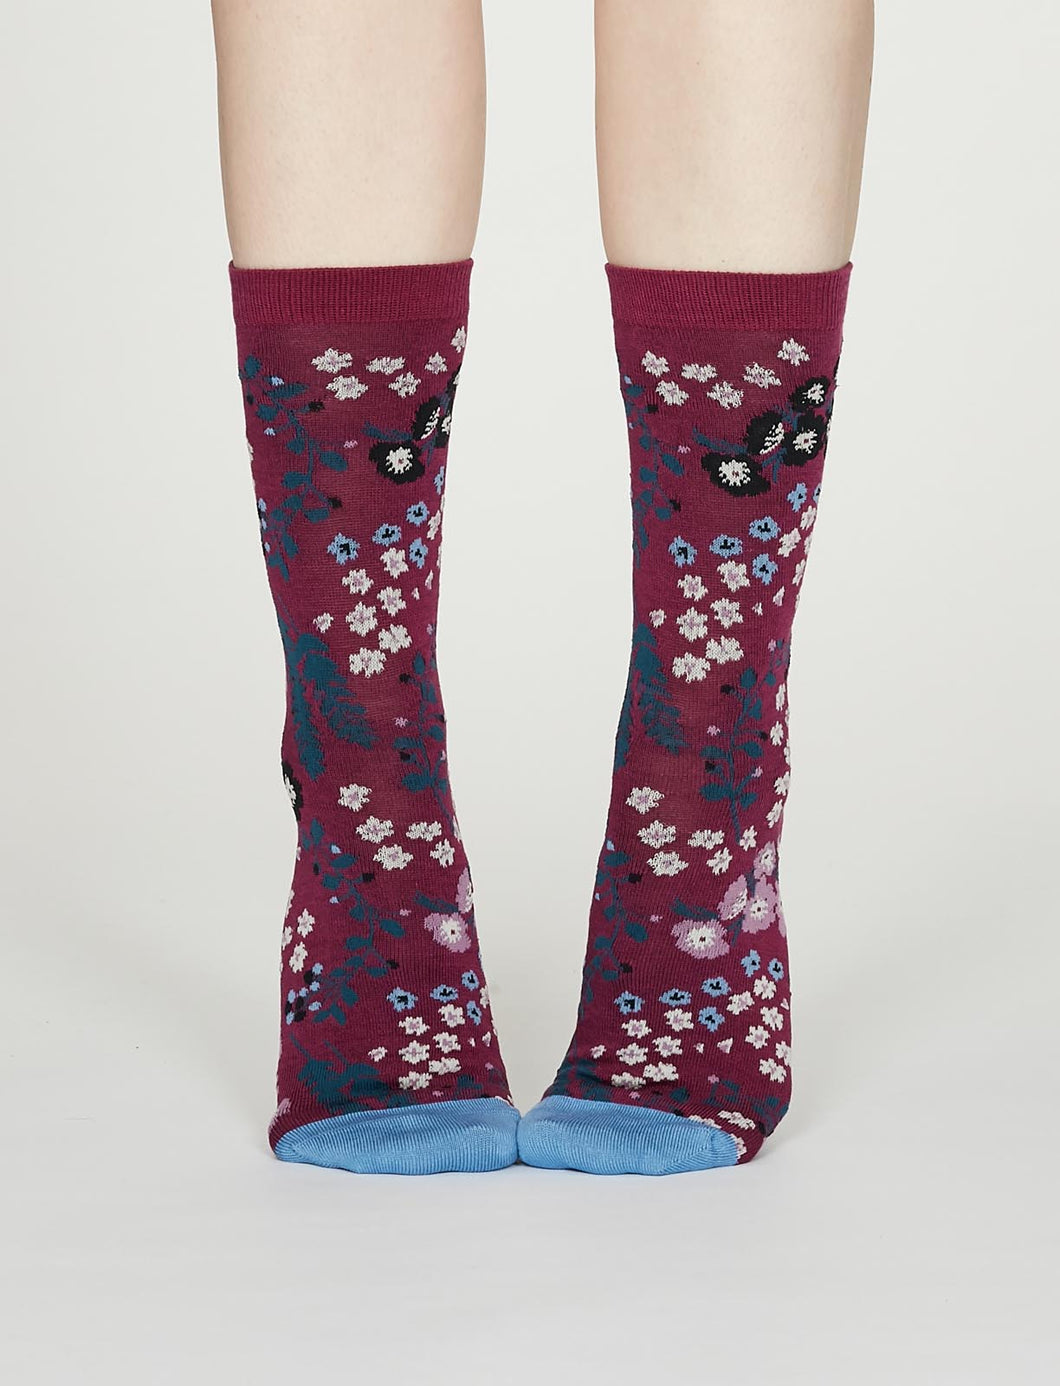 Thought Bamboo Women's Socks - Blossom Vivid Magenta